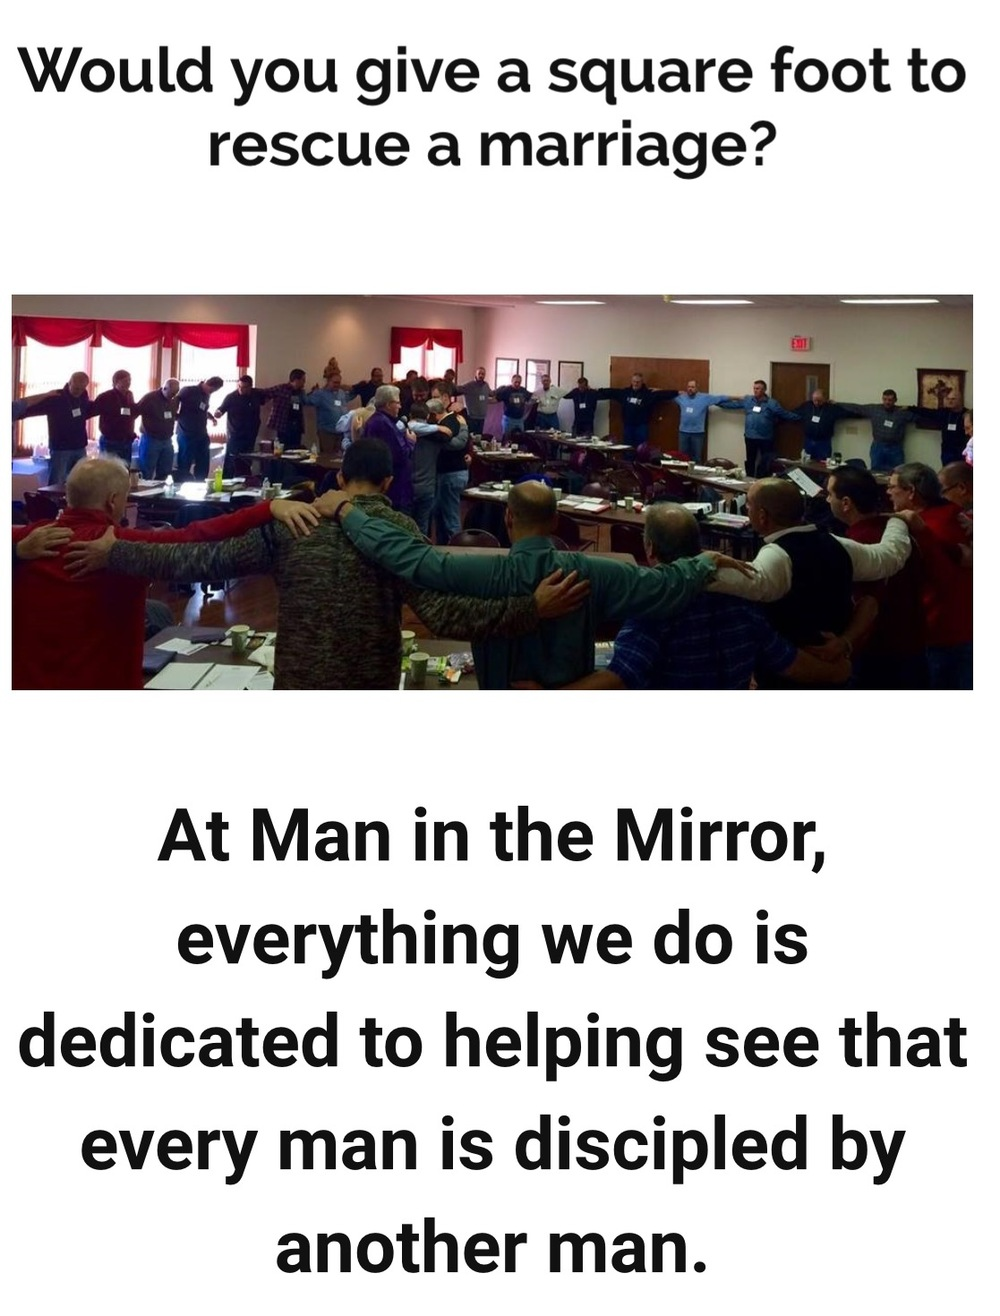 Donate a $100 Foot To Reach Many Men - Man in the Mirror